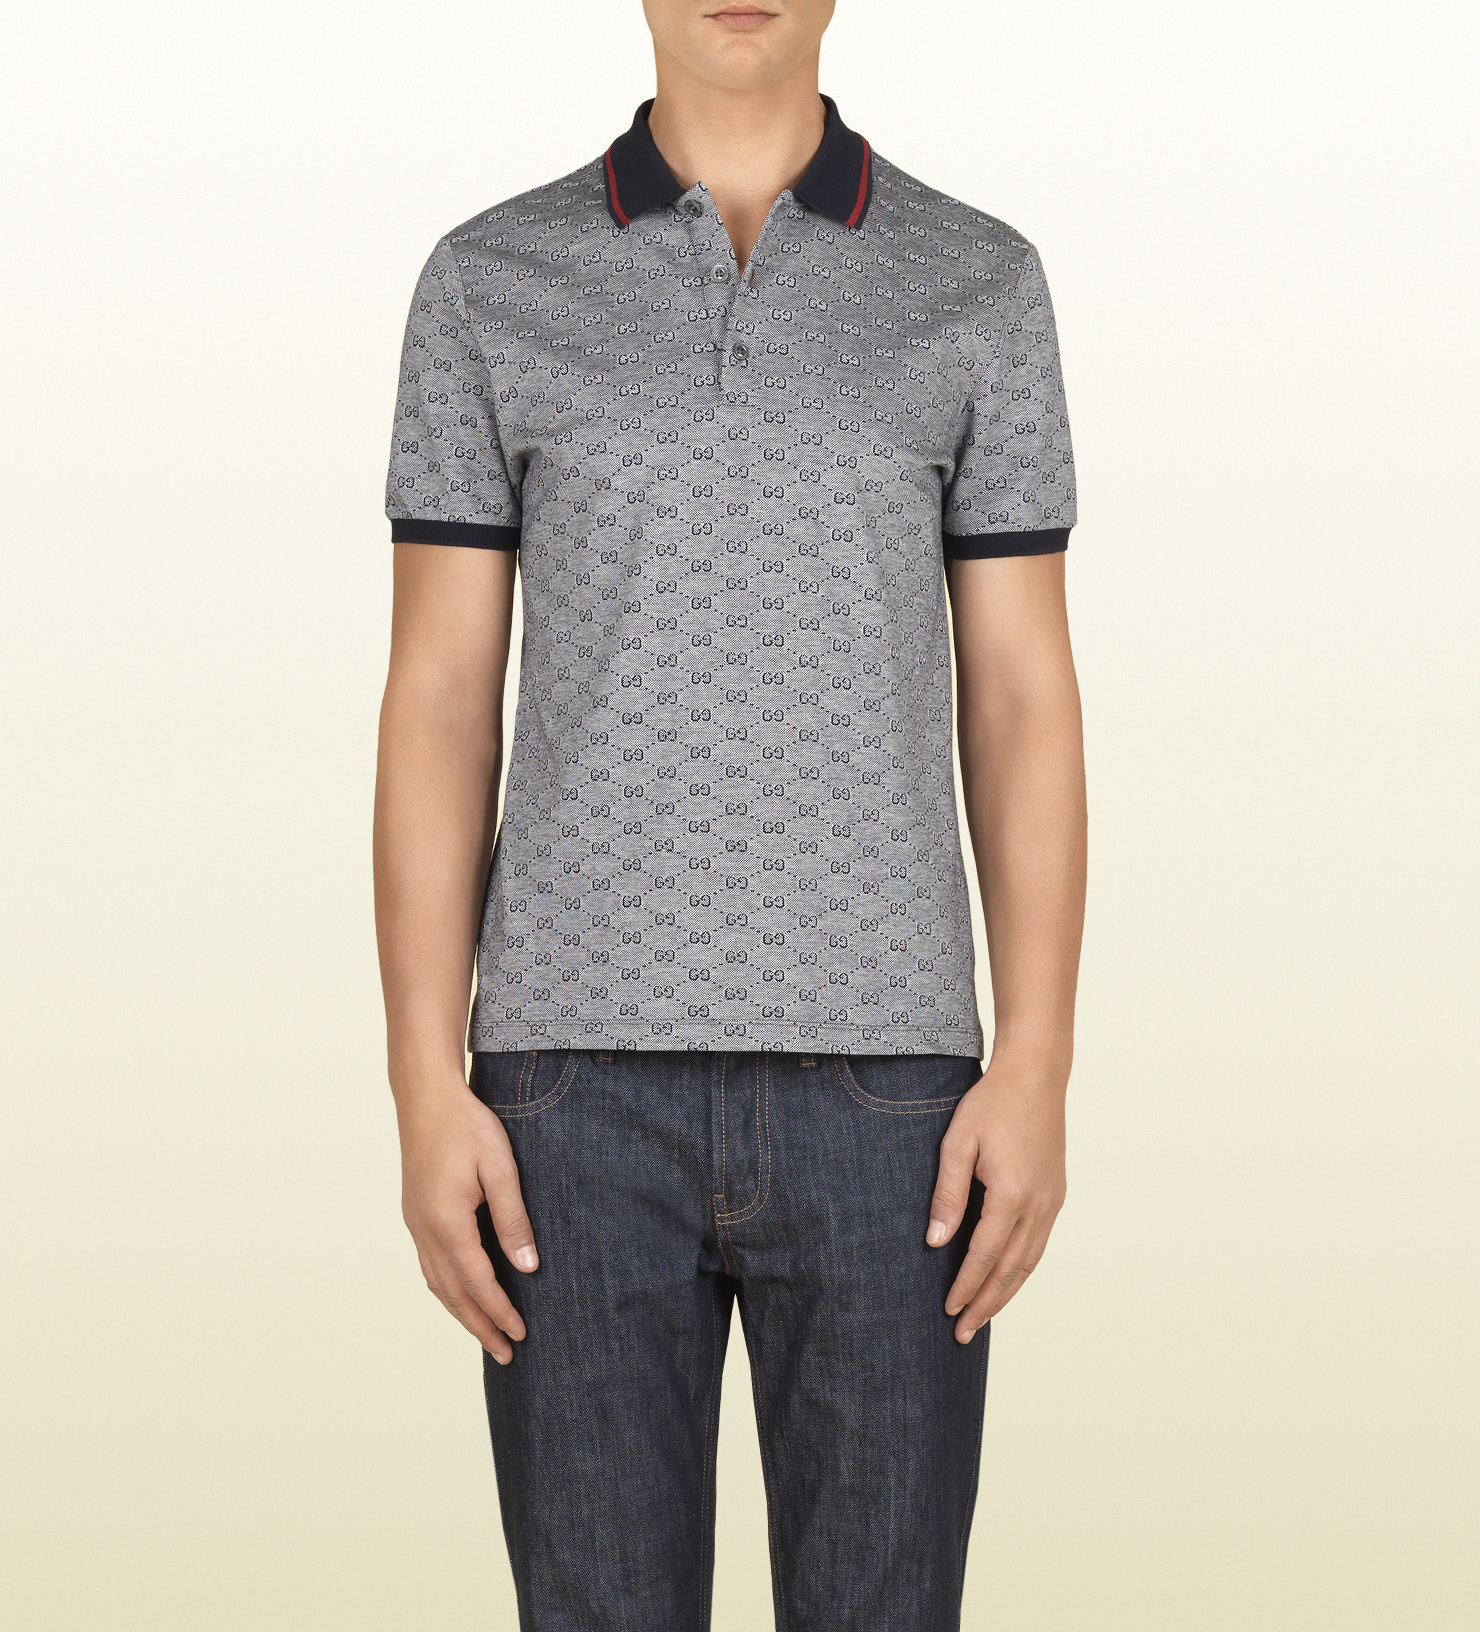 9c679d6c1638e Gucci Ink Pique Gg Jacquard Short Sleeve Polo in Gray for Men - Lyst